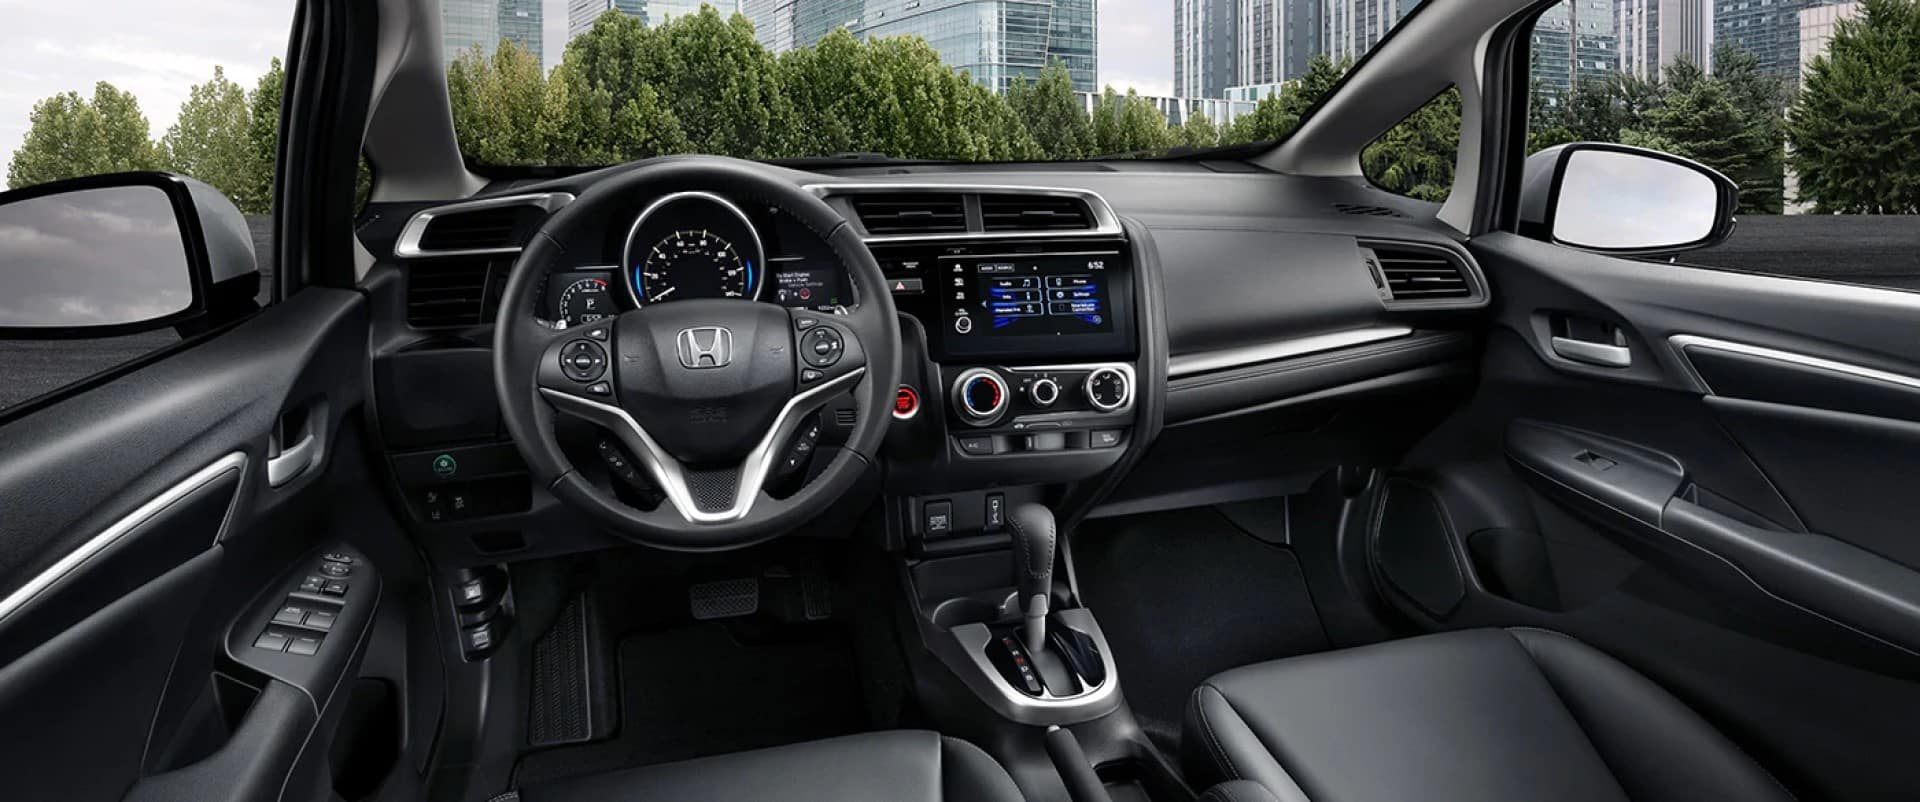 Honda_Fit_Interior_Dashboard